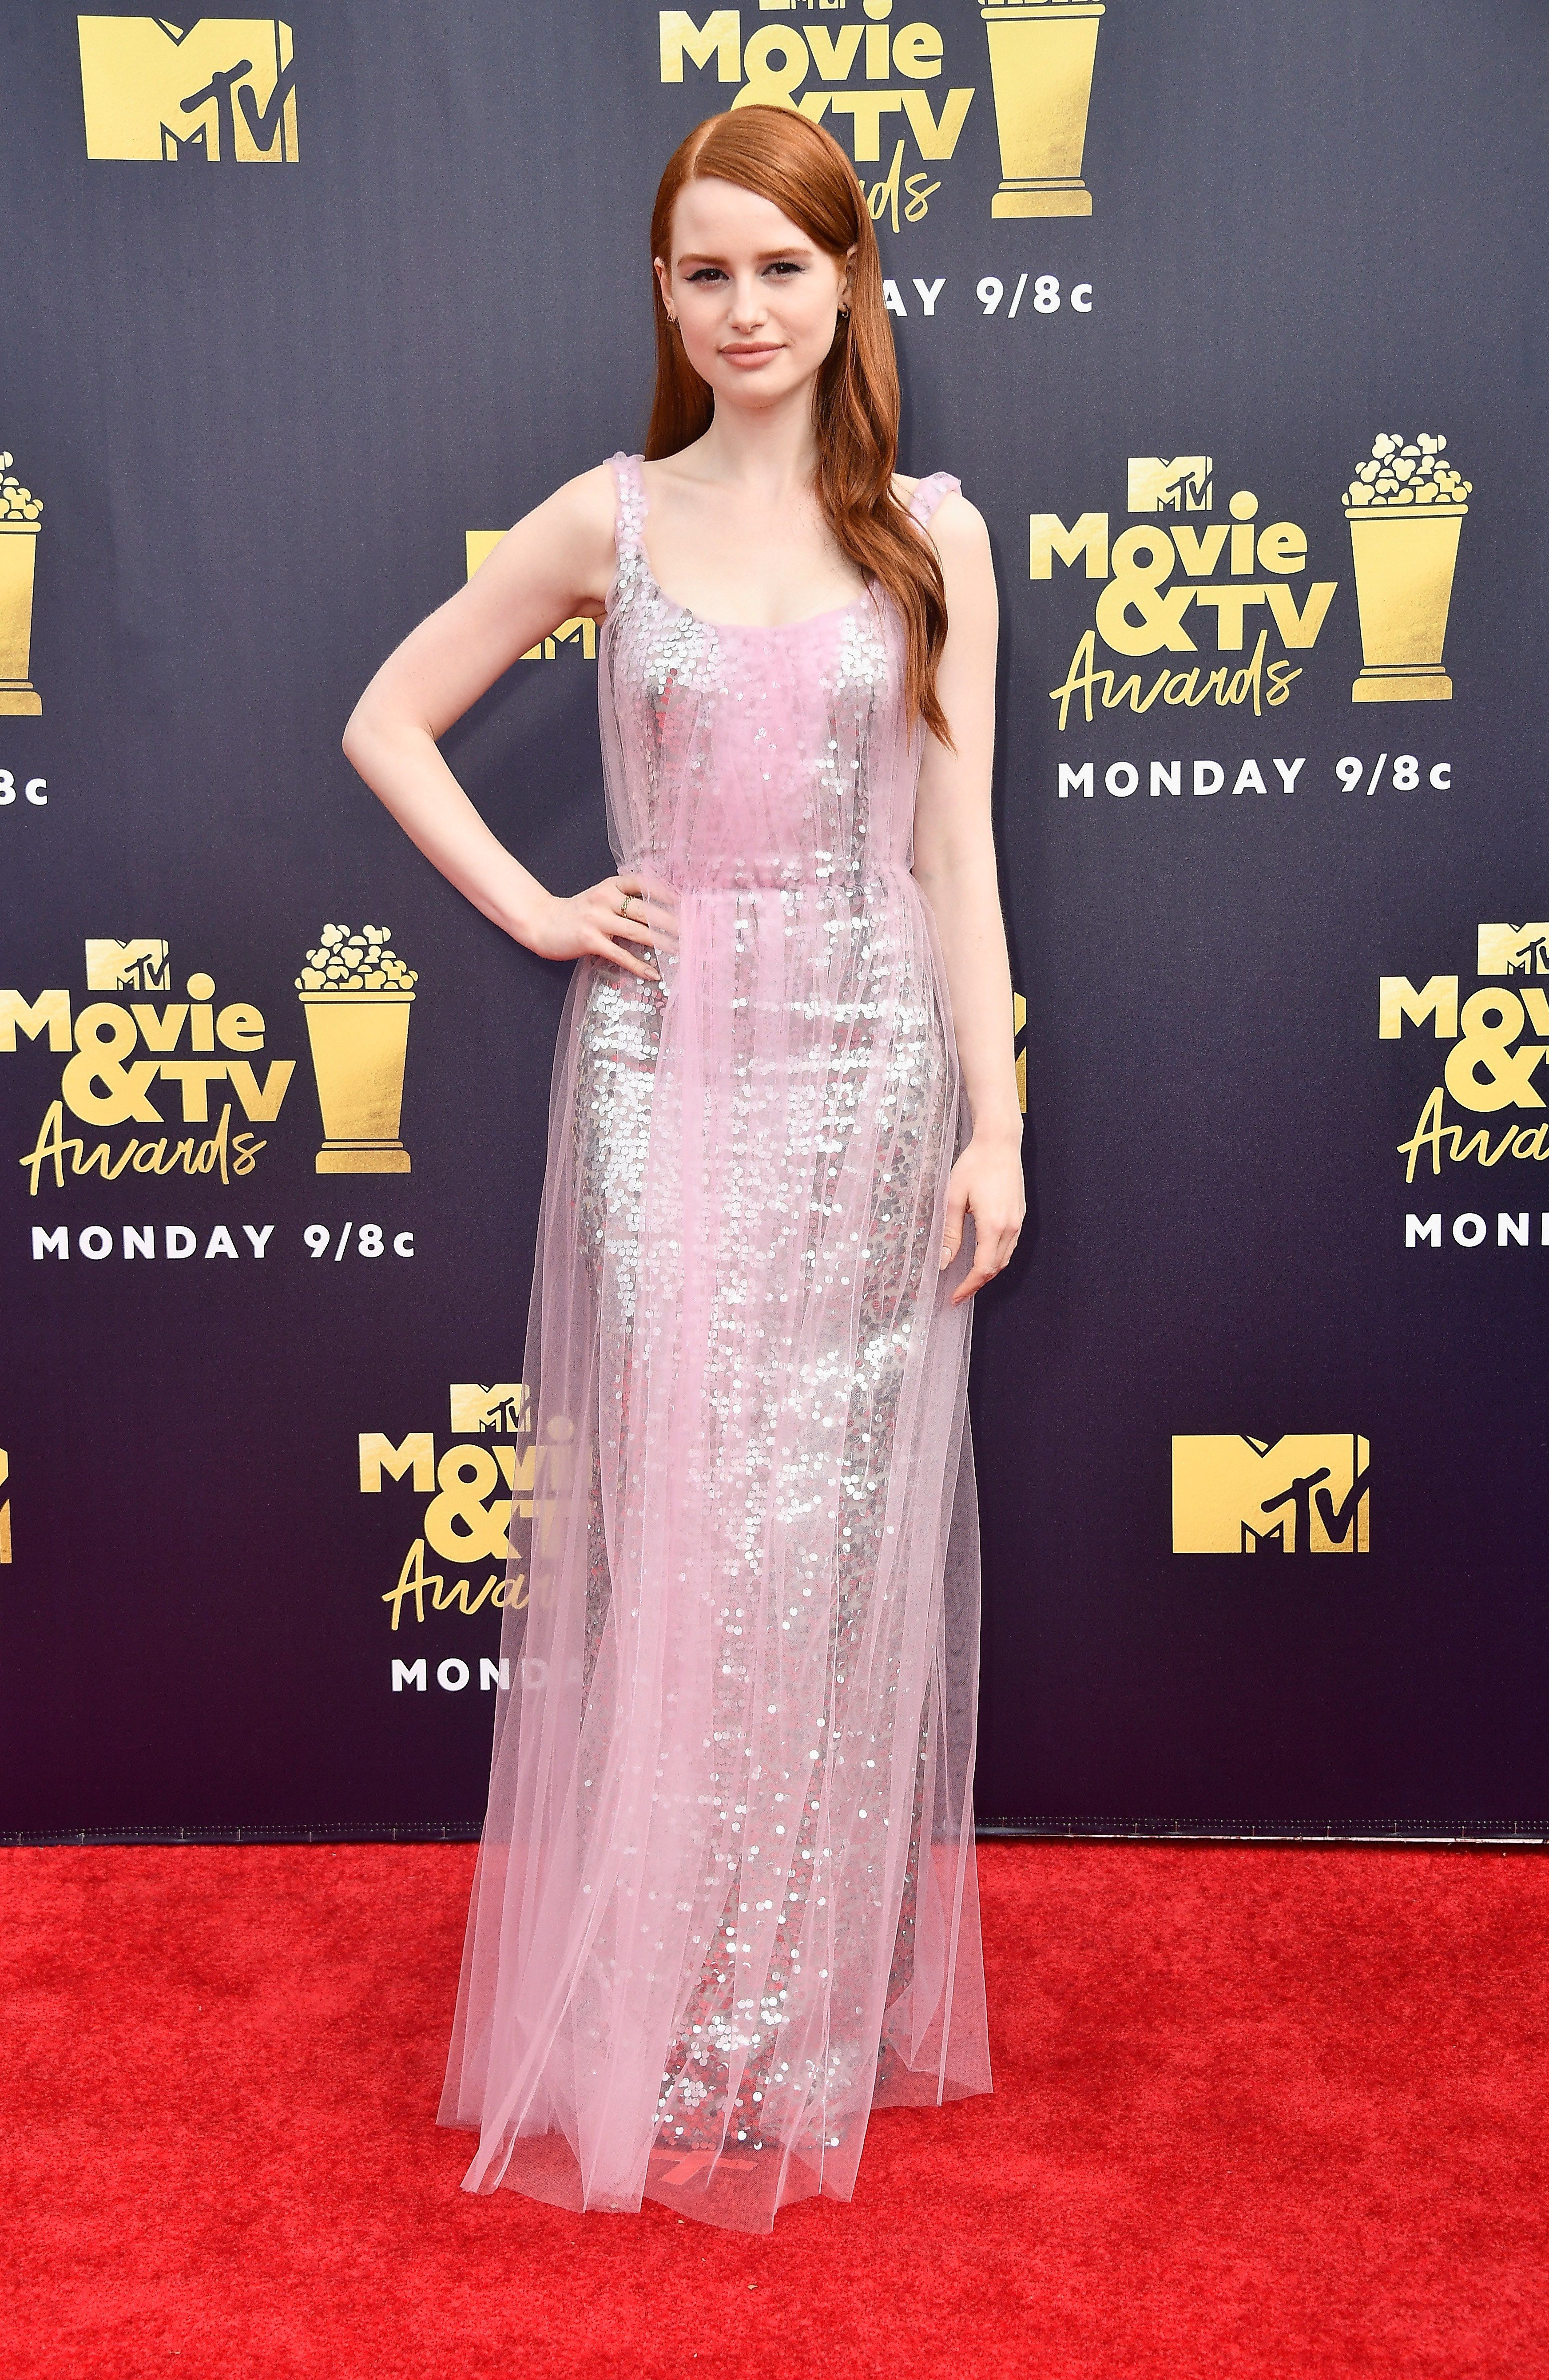 818e1638fd Madelaine Petsch - The Best Looks From the 2018 MTV Movie Awards